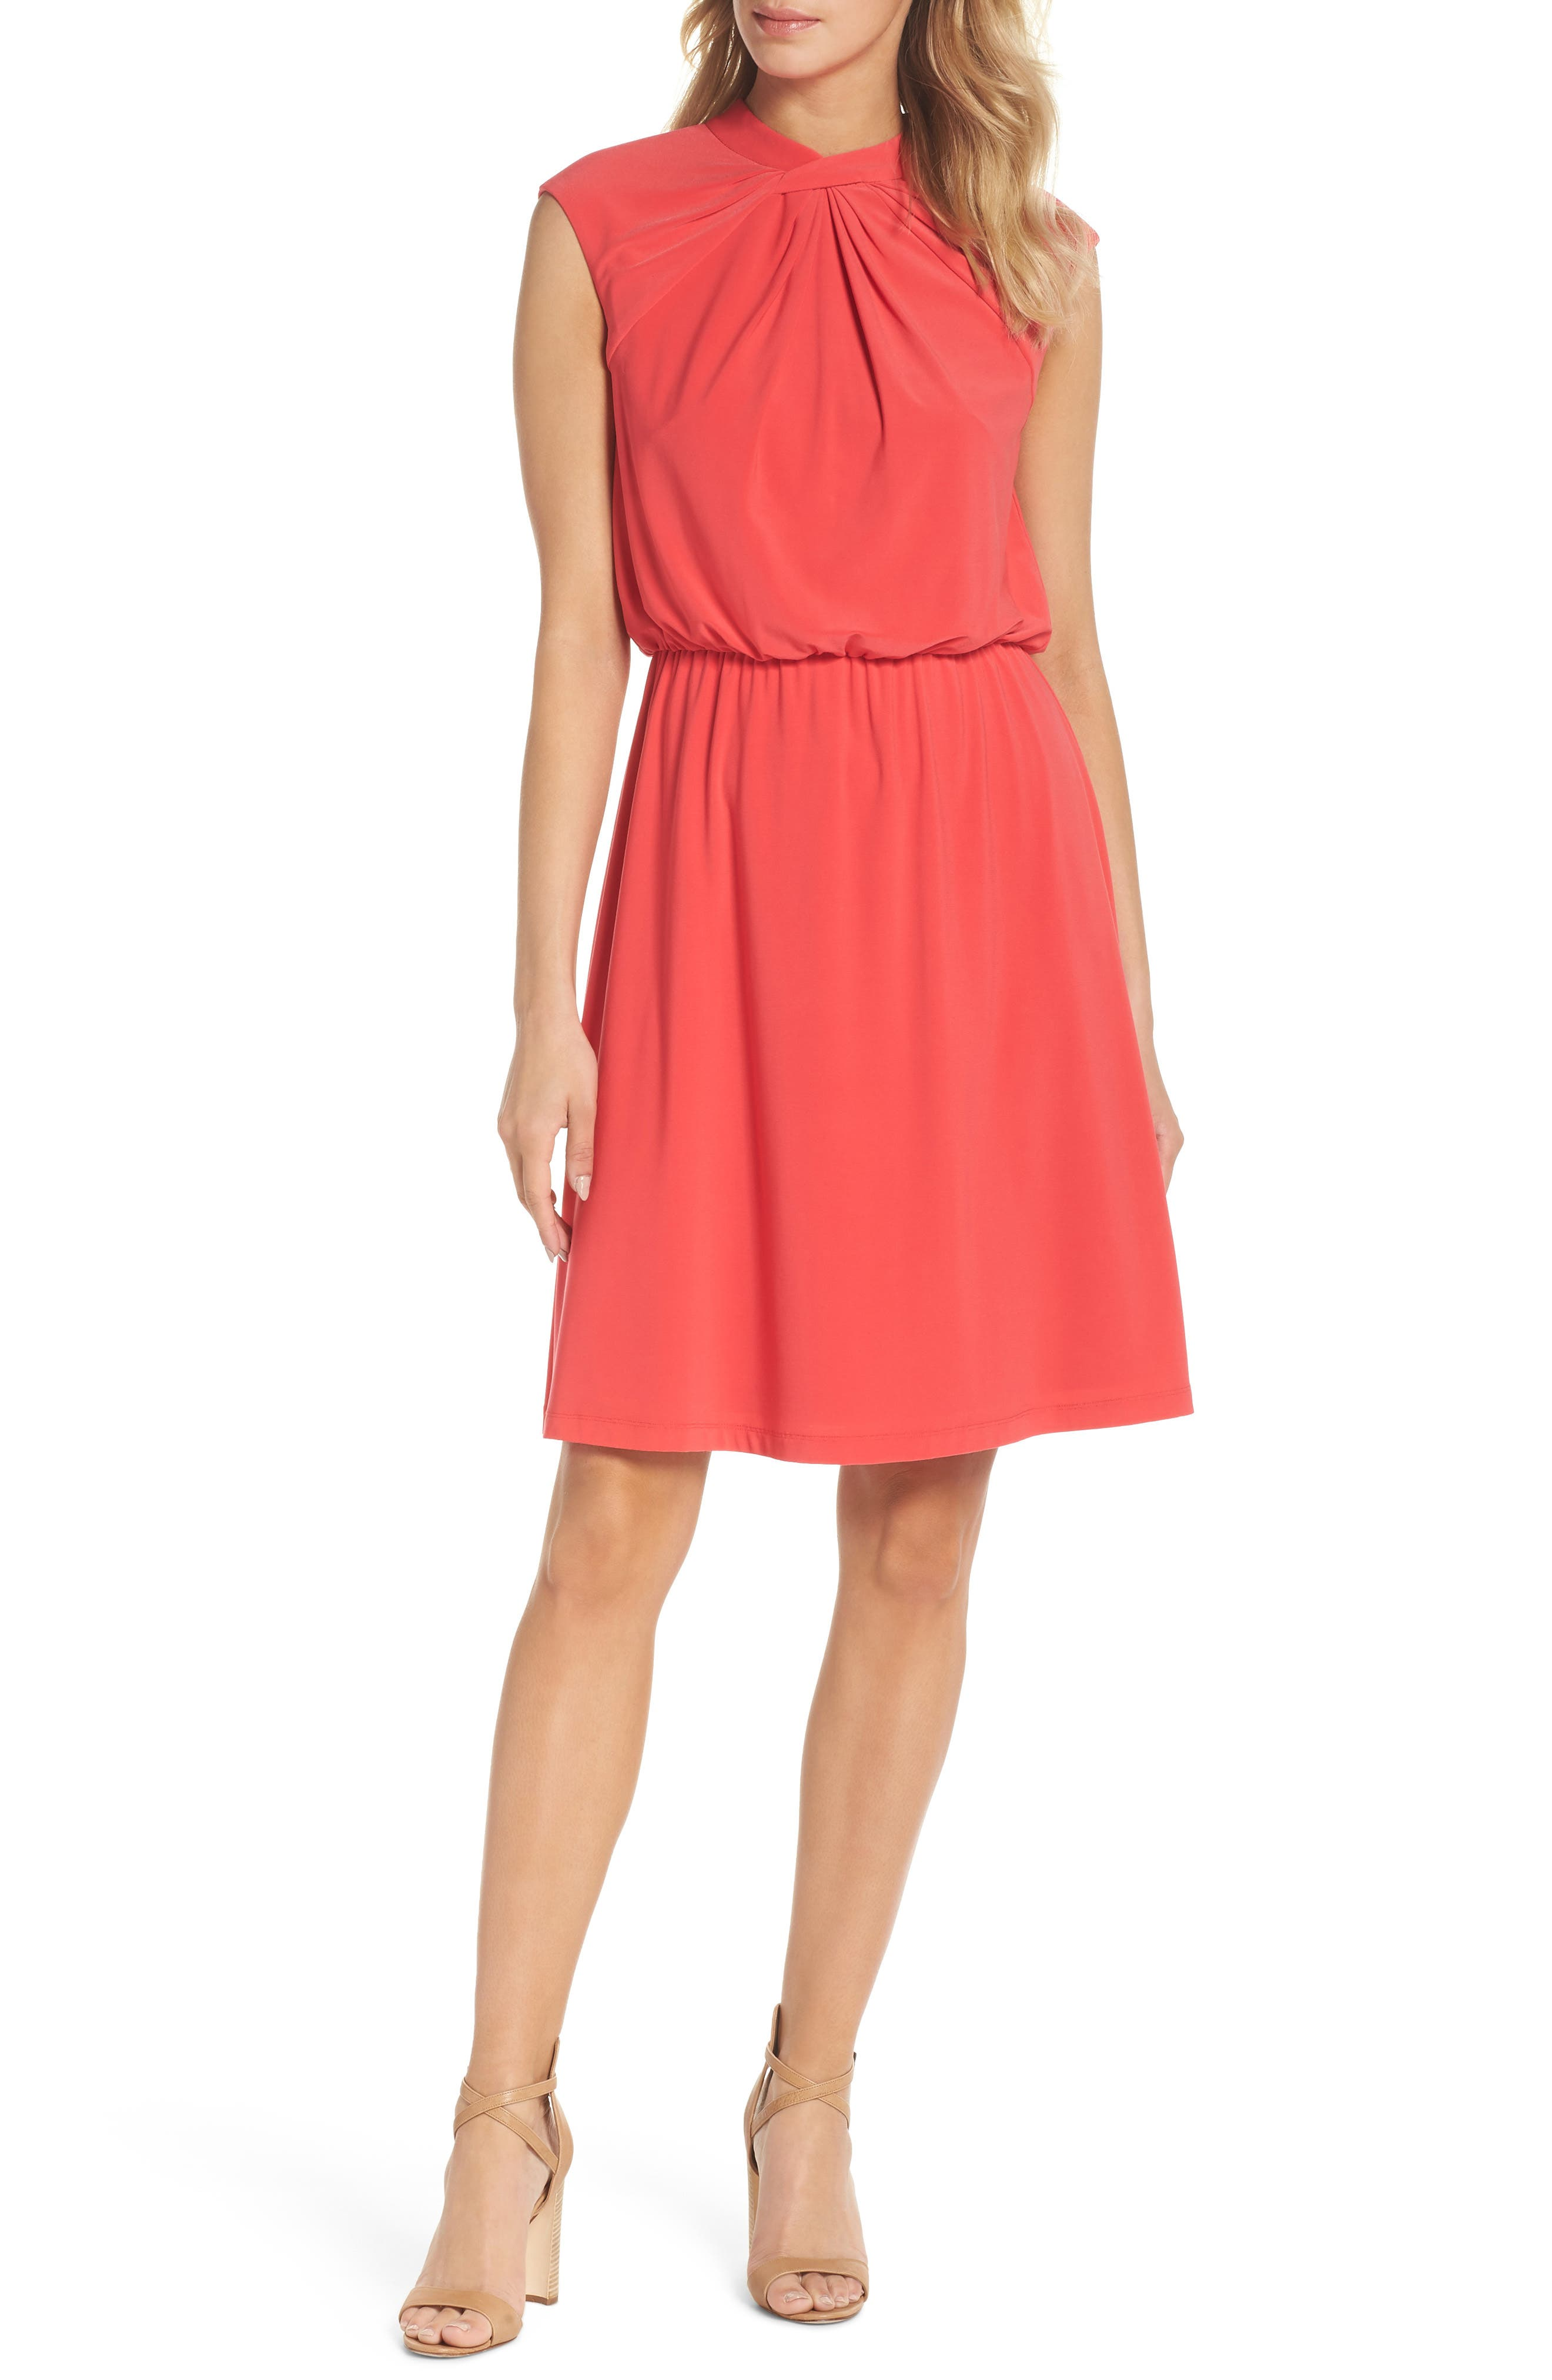 Adrianna Papell Twist Neck Jersey Blouson Dress (Regular & Petite)